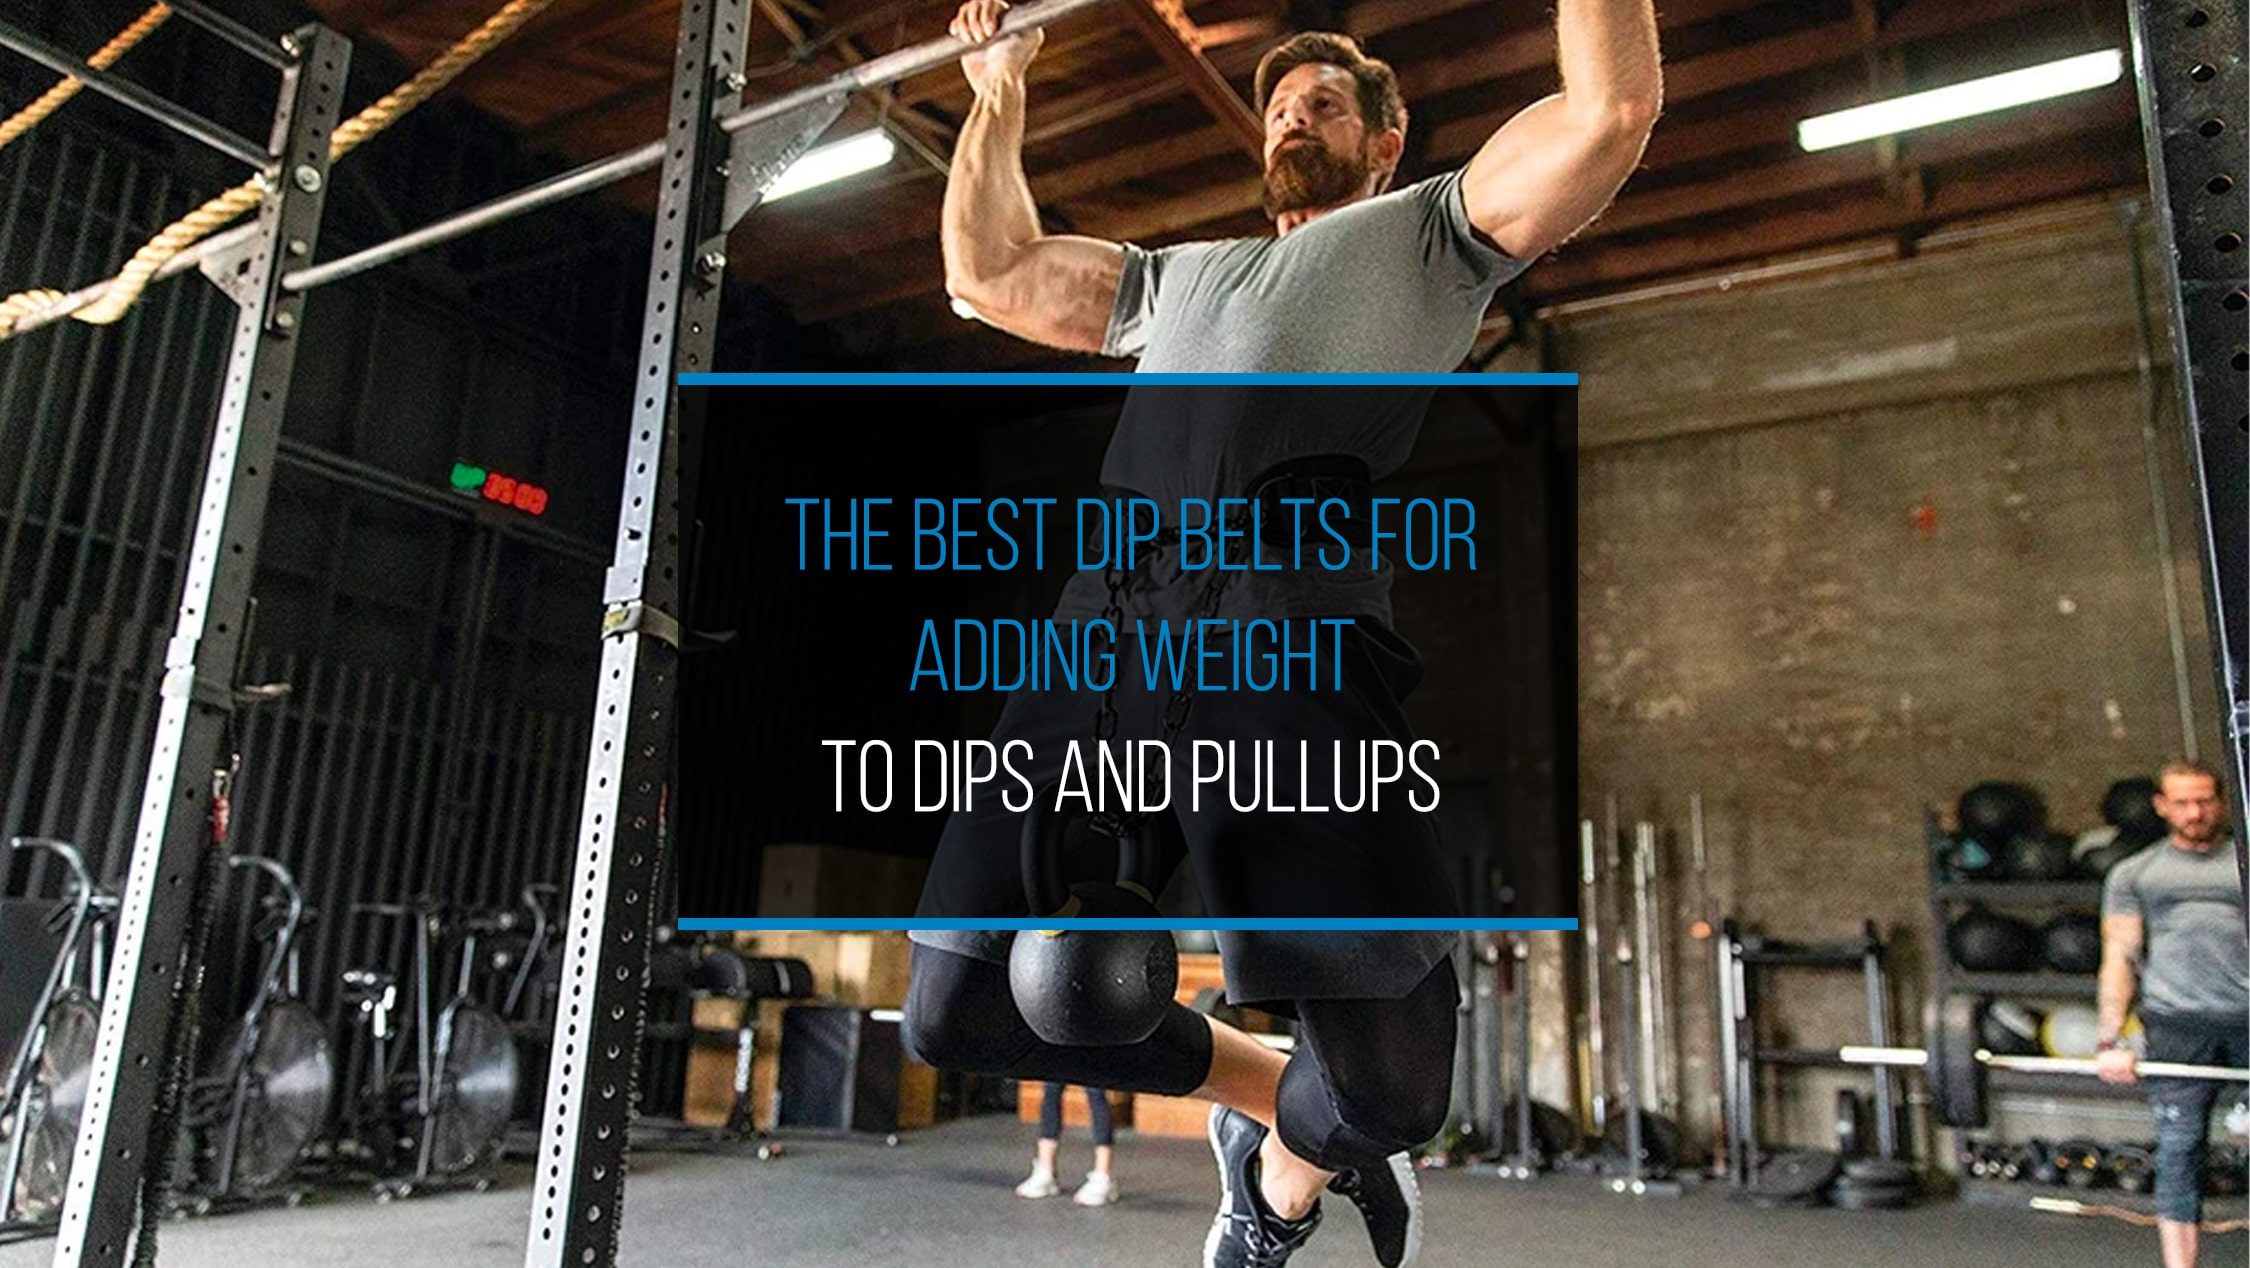 The Best Dip Belts For Adding Weight to dips and pullups